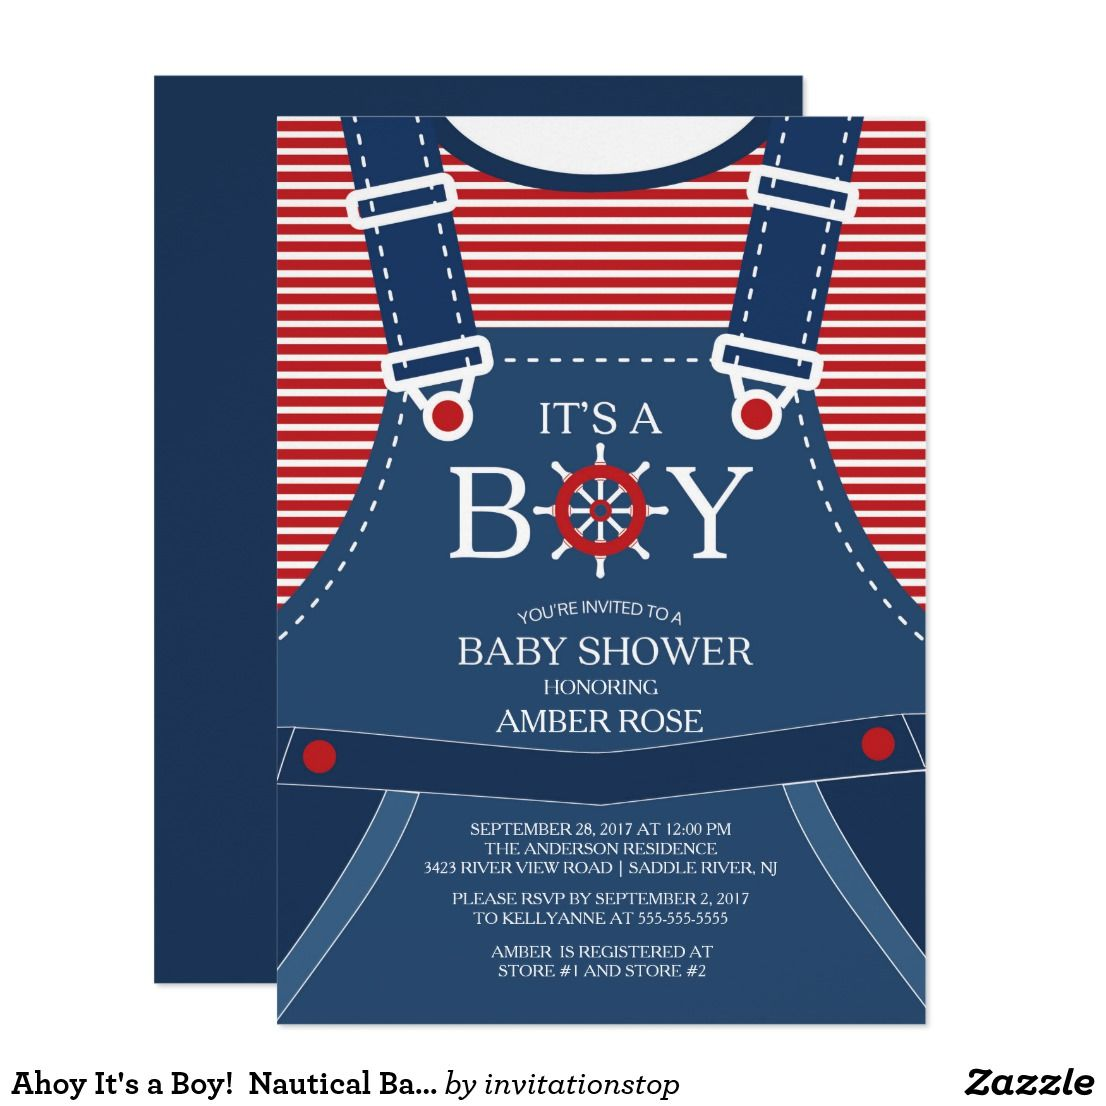 Ahoy It\'s a Boy! Nautical Baby Shower Invitation | Baby Shower ...